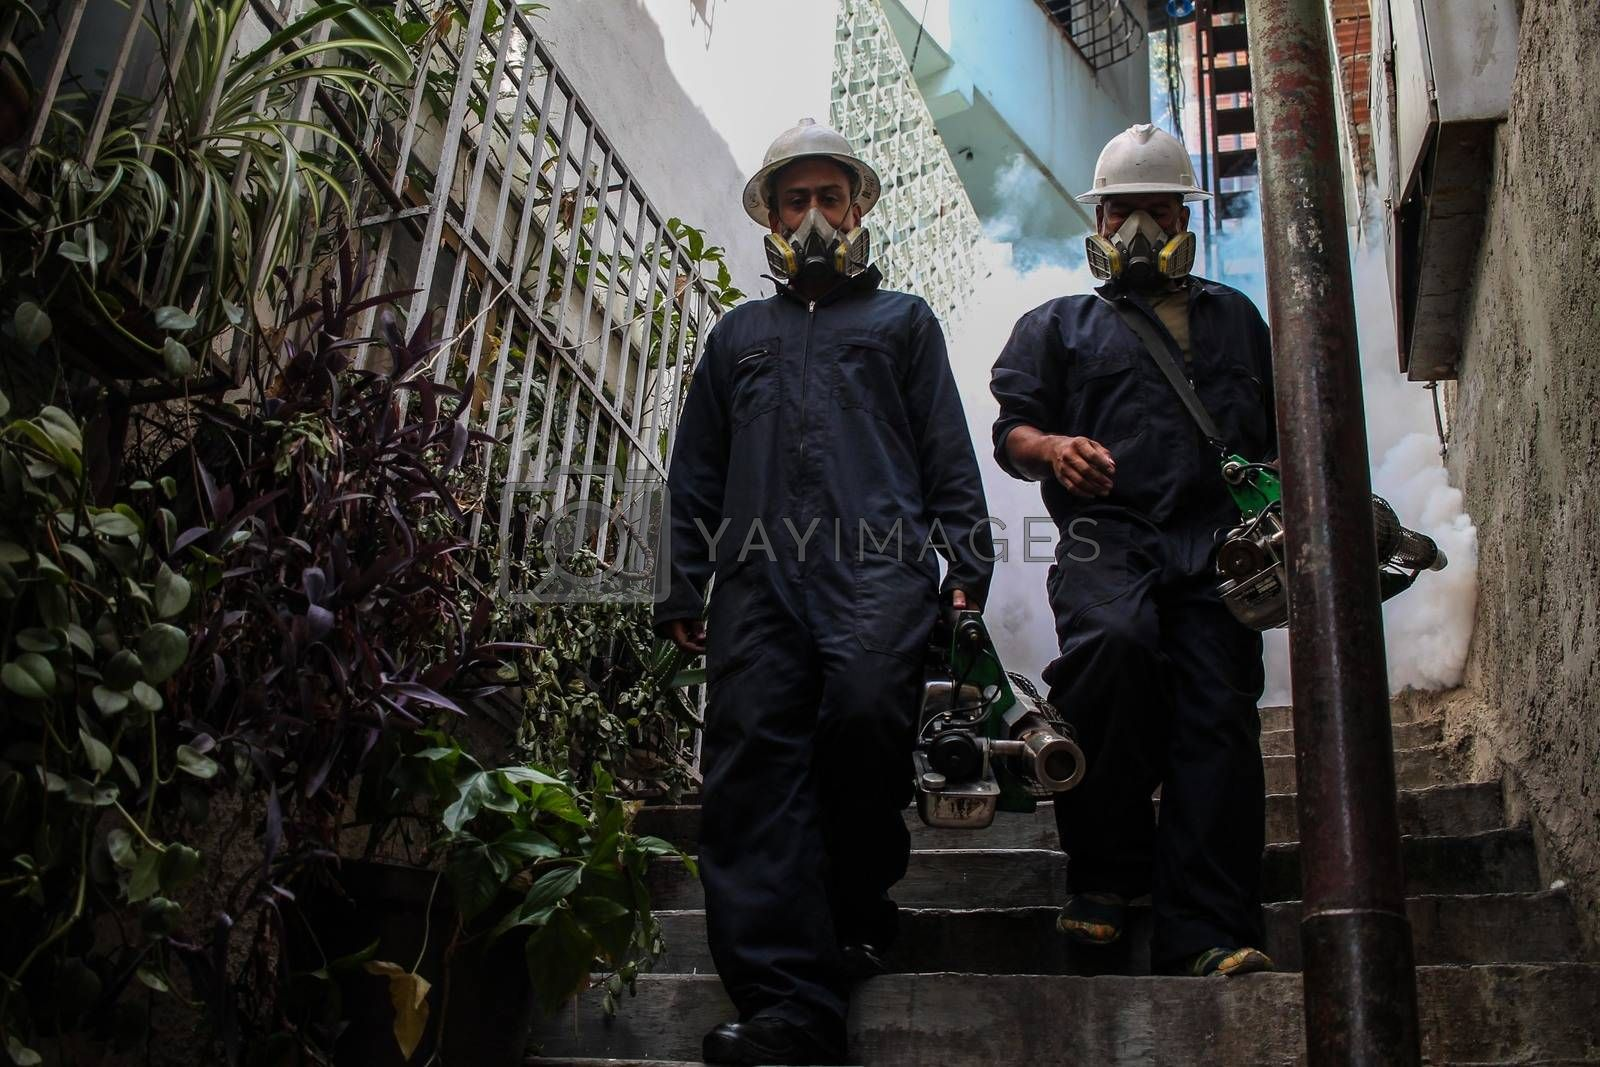 VENEZUELA, Caracas: Members of a fumigation crew exit a home after exterminating mosquitoes carrying the rapidly spreading Zika virus in the slums of Caracas, Venezuela on February 3, 2016. As of February 4, there have been reports of at least 255 cases of the rare Guillain-Barre syndrome — which causes the immune system to attack the nerves — potentially linked to the Zika virus in Venezuela.